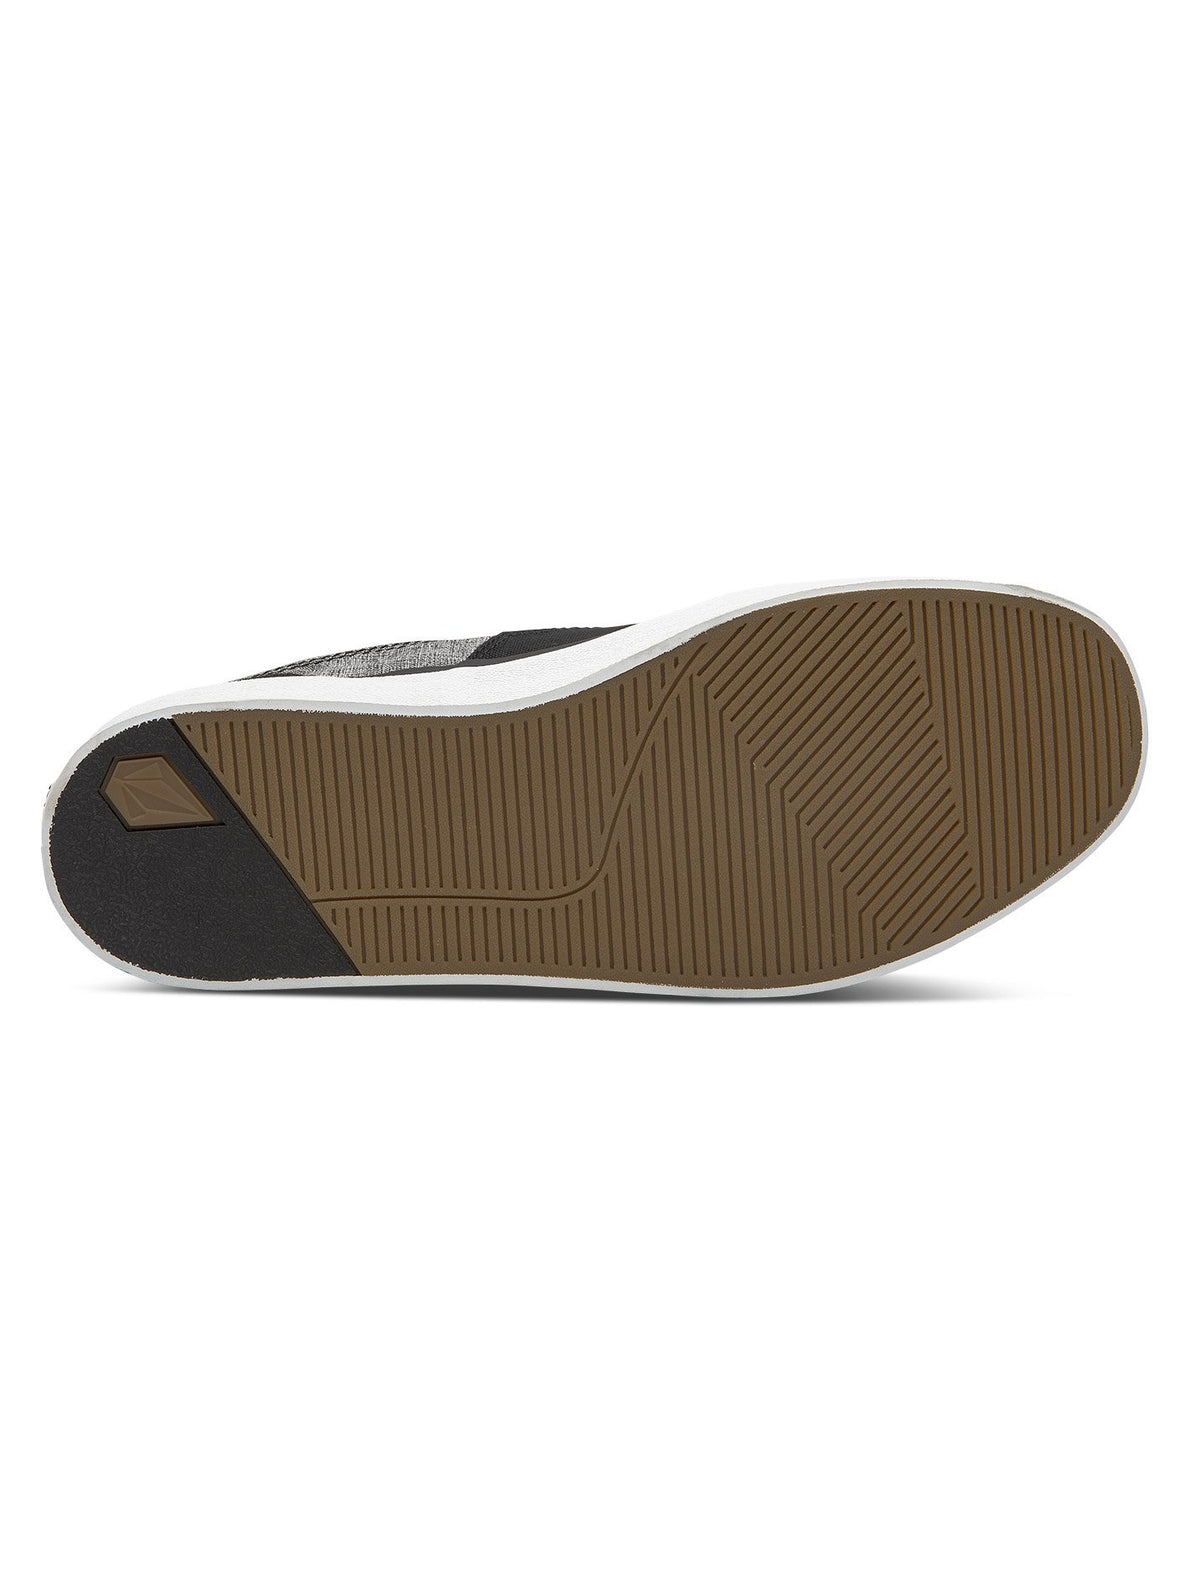 Draw Lo Shoe - Heather Black (V4031710_HBK) [3]